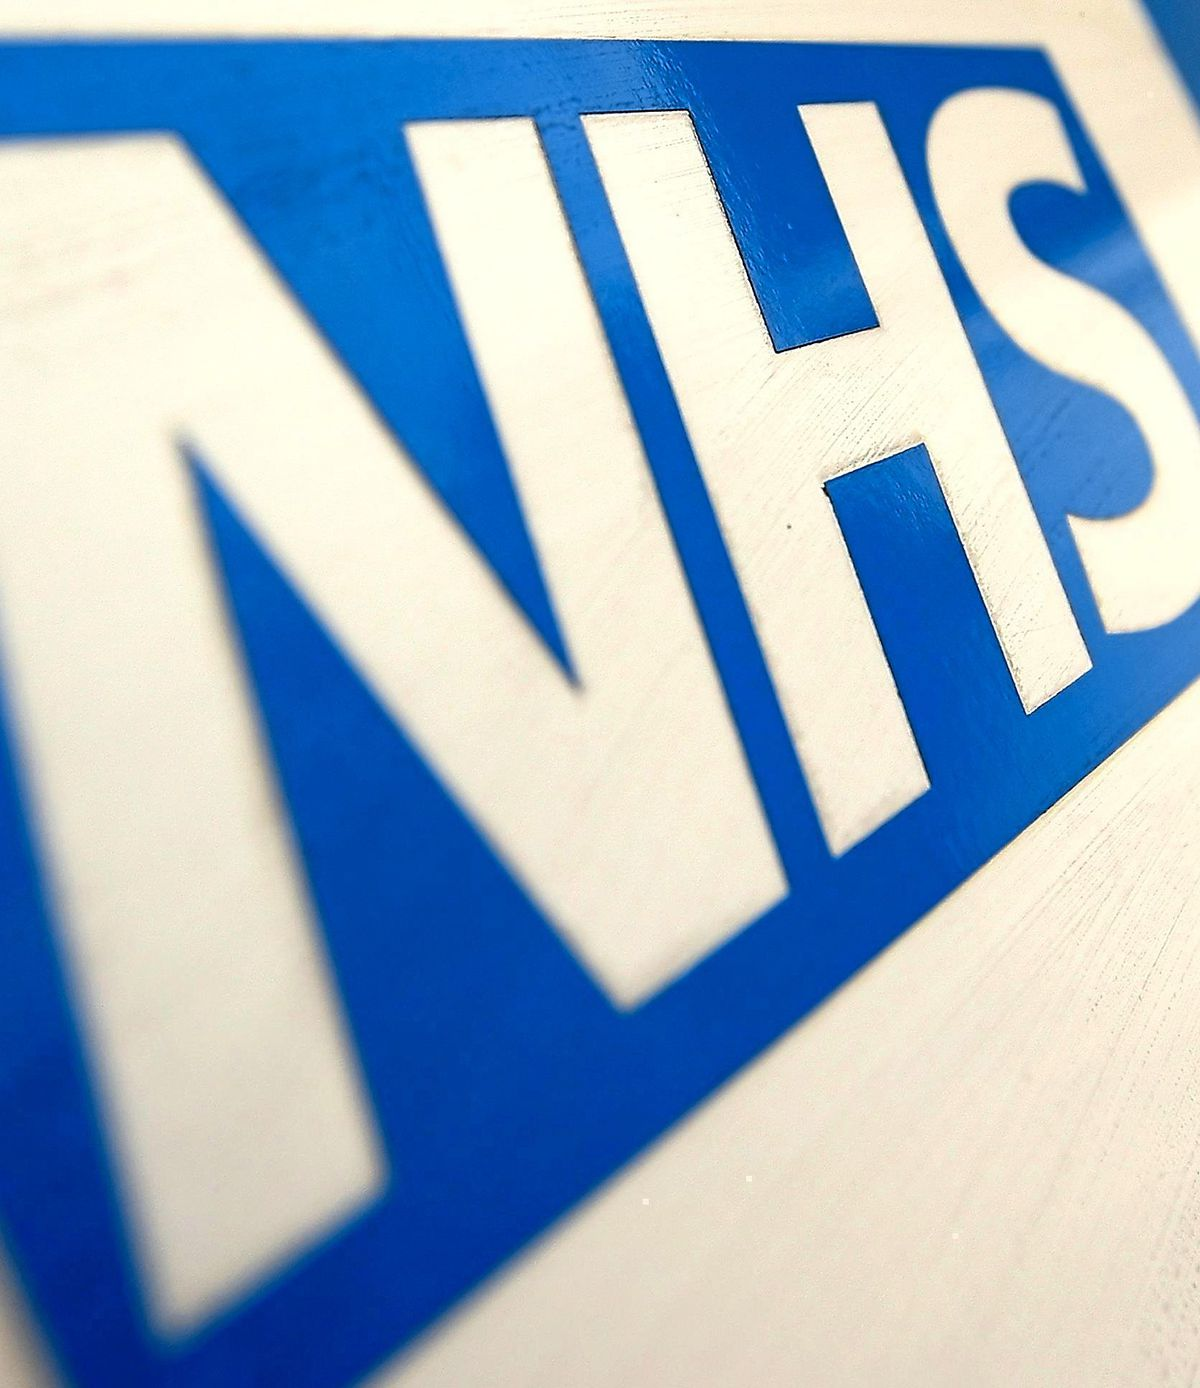 Stretched – the NHS